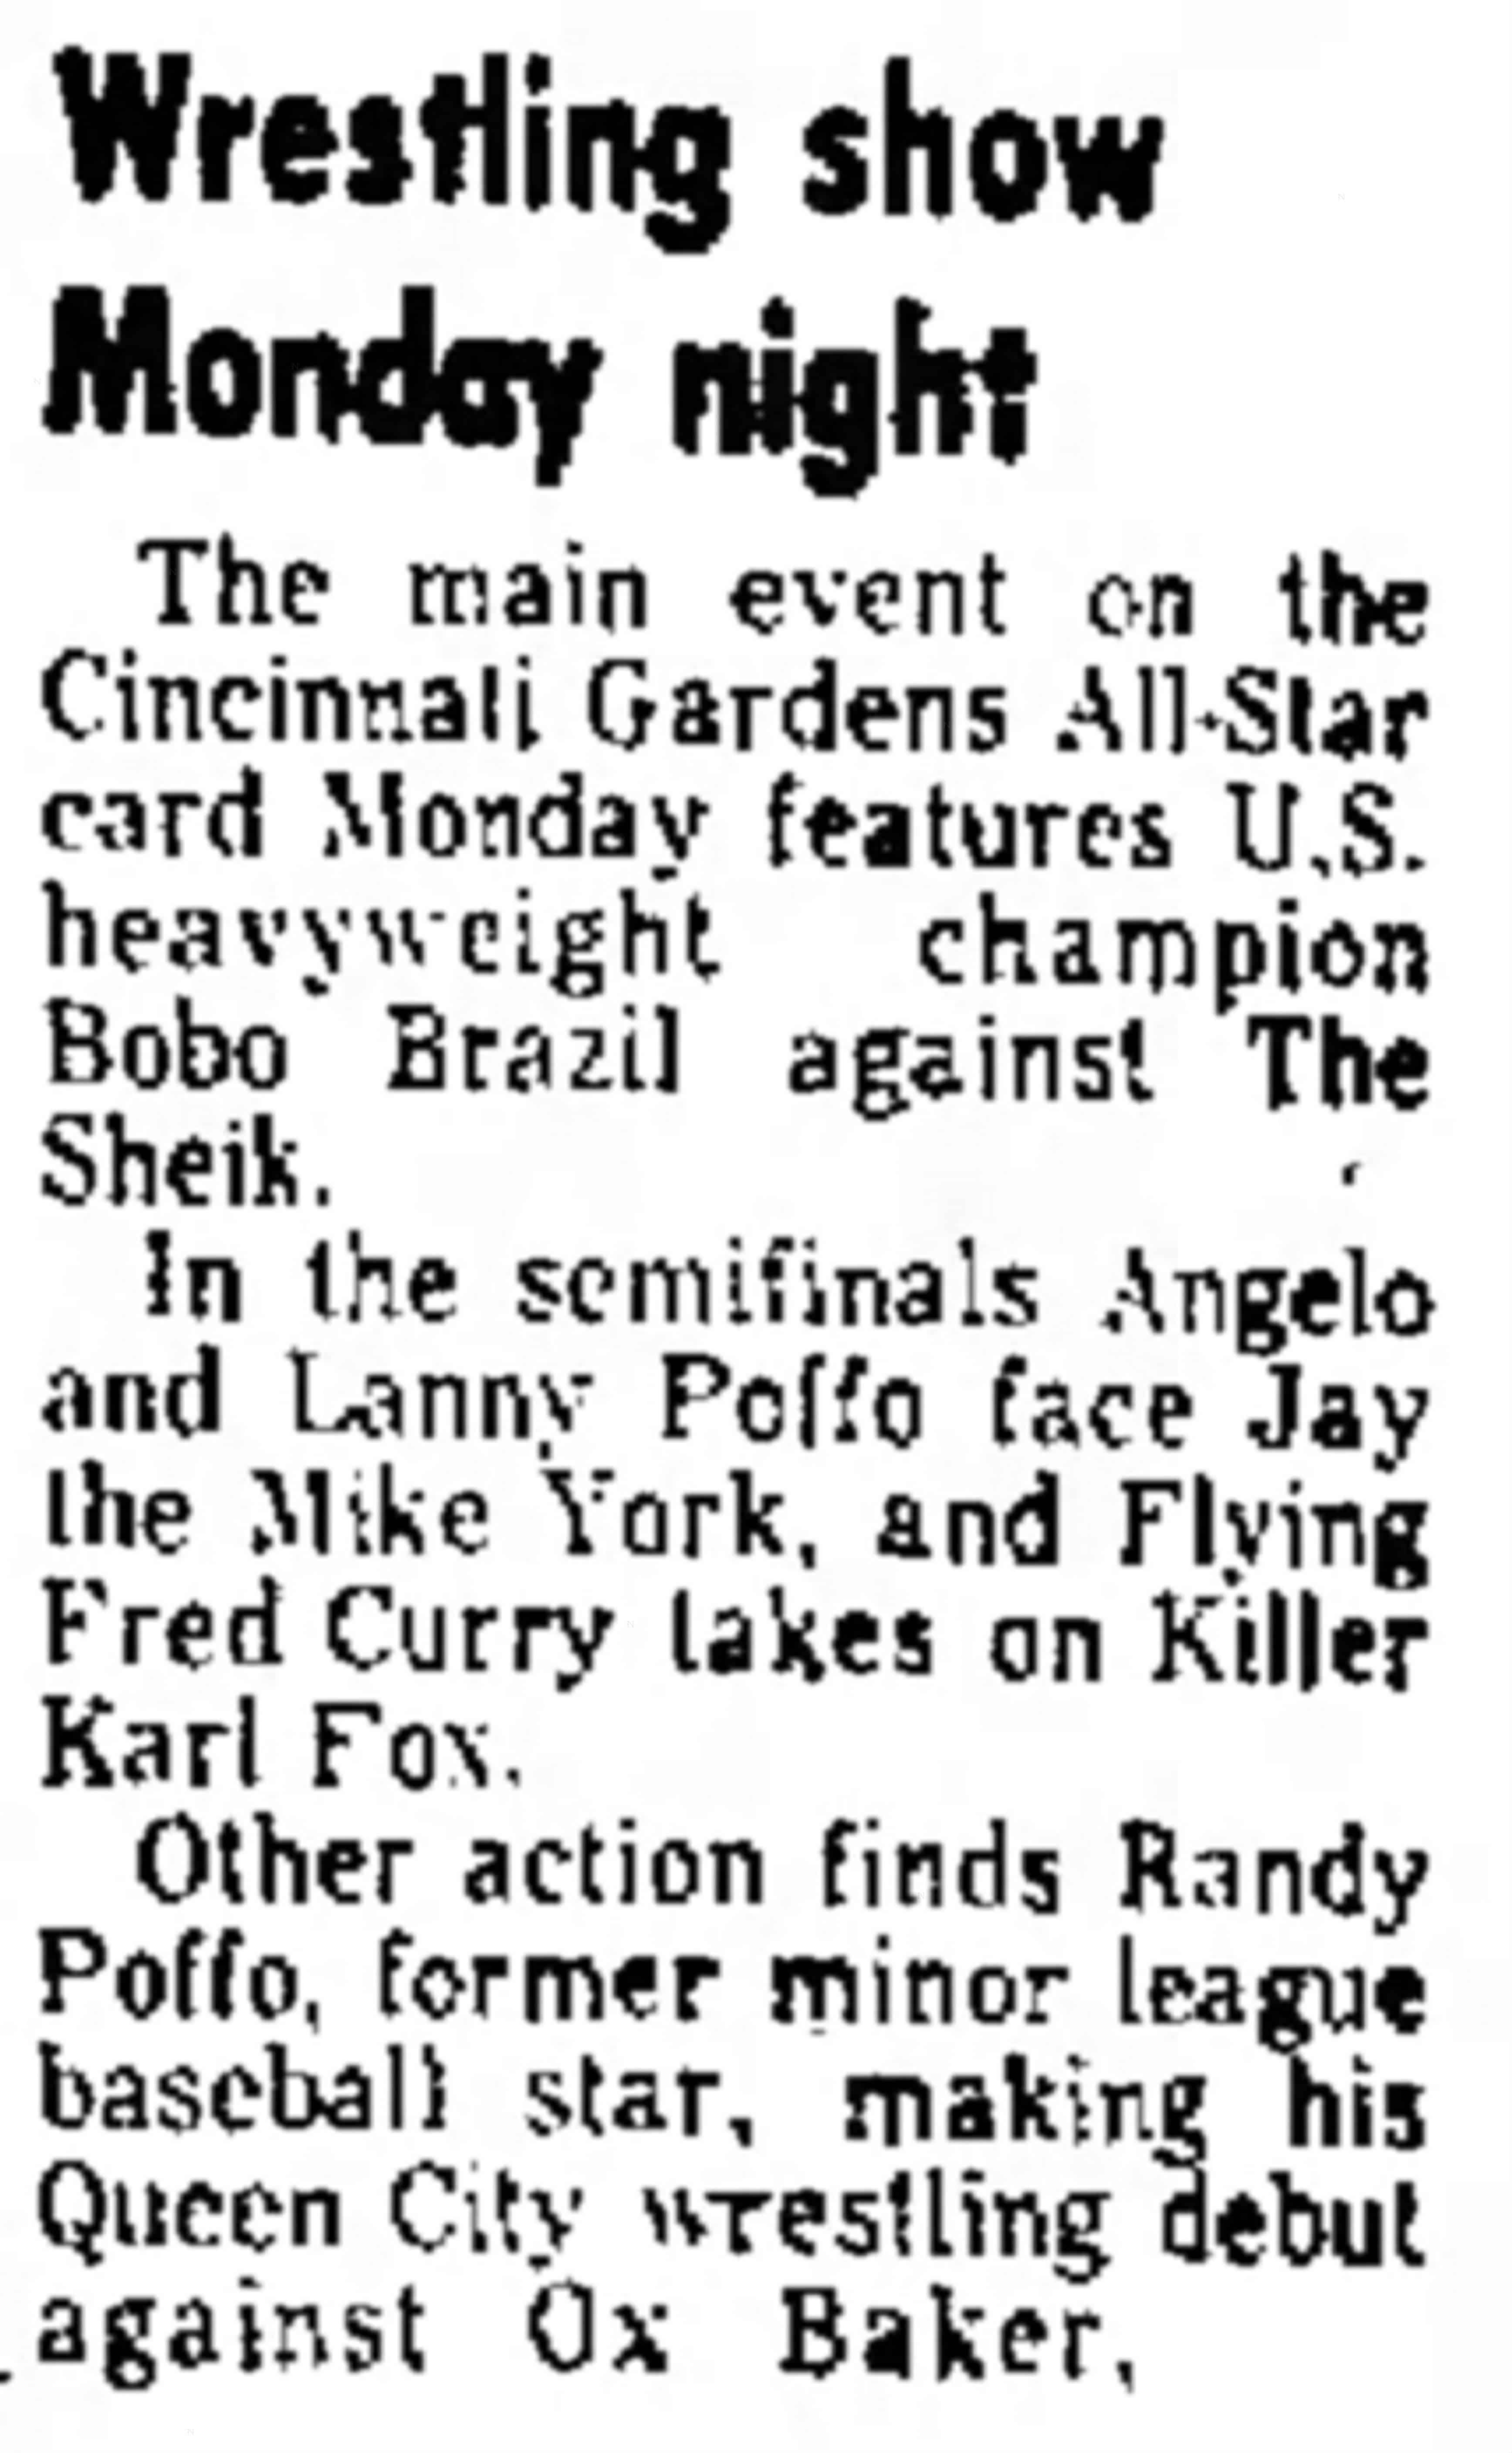 A May 11, 1975 news article from The Journal News promoting the arrival of 'former minor league baseball star,' Randy Poffo